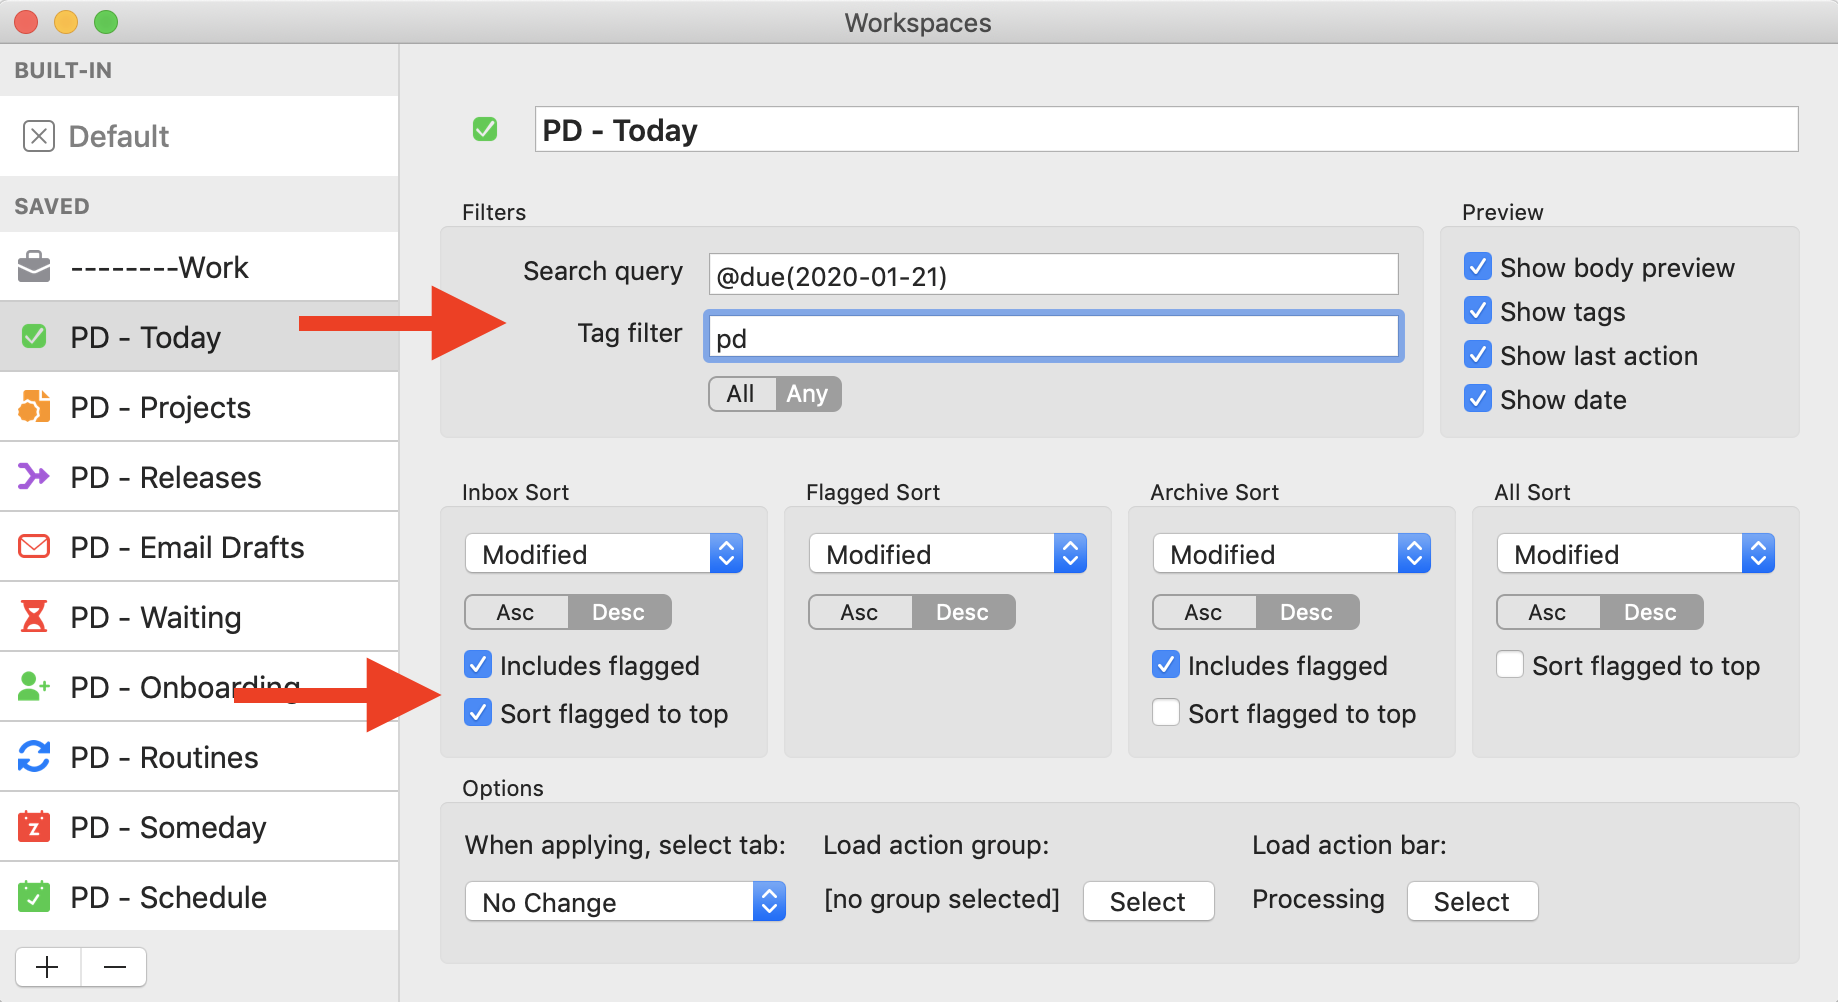 Manage Workspace Settings